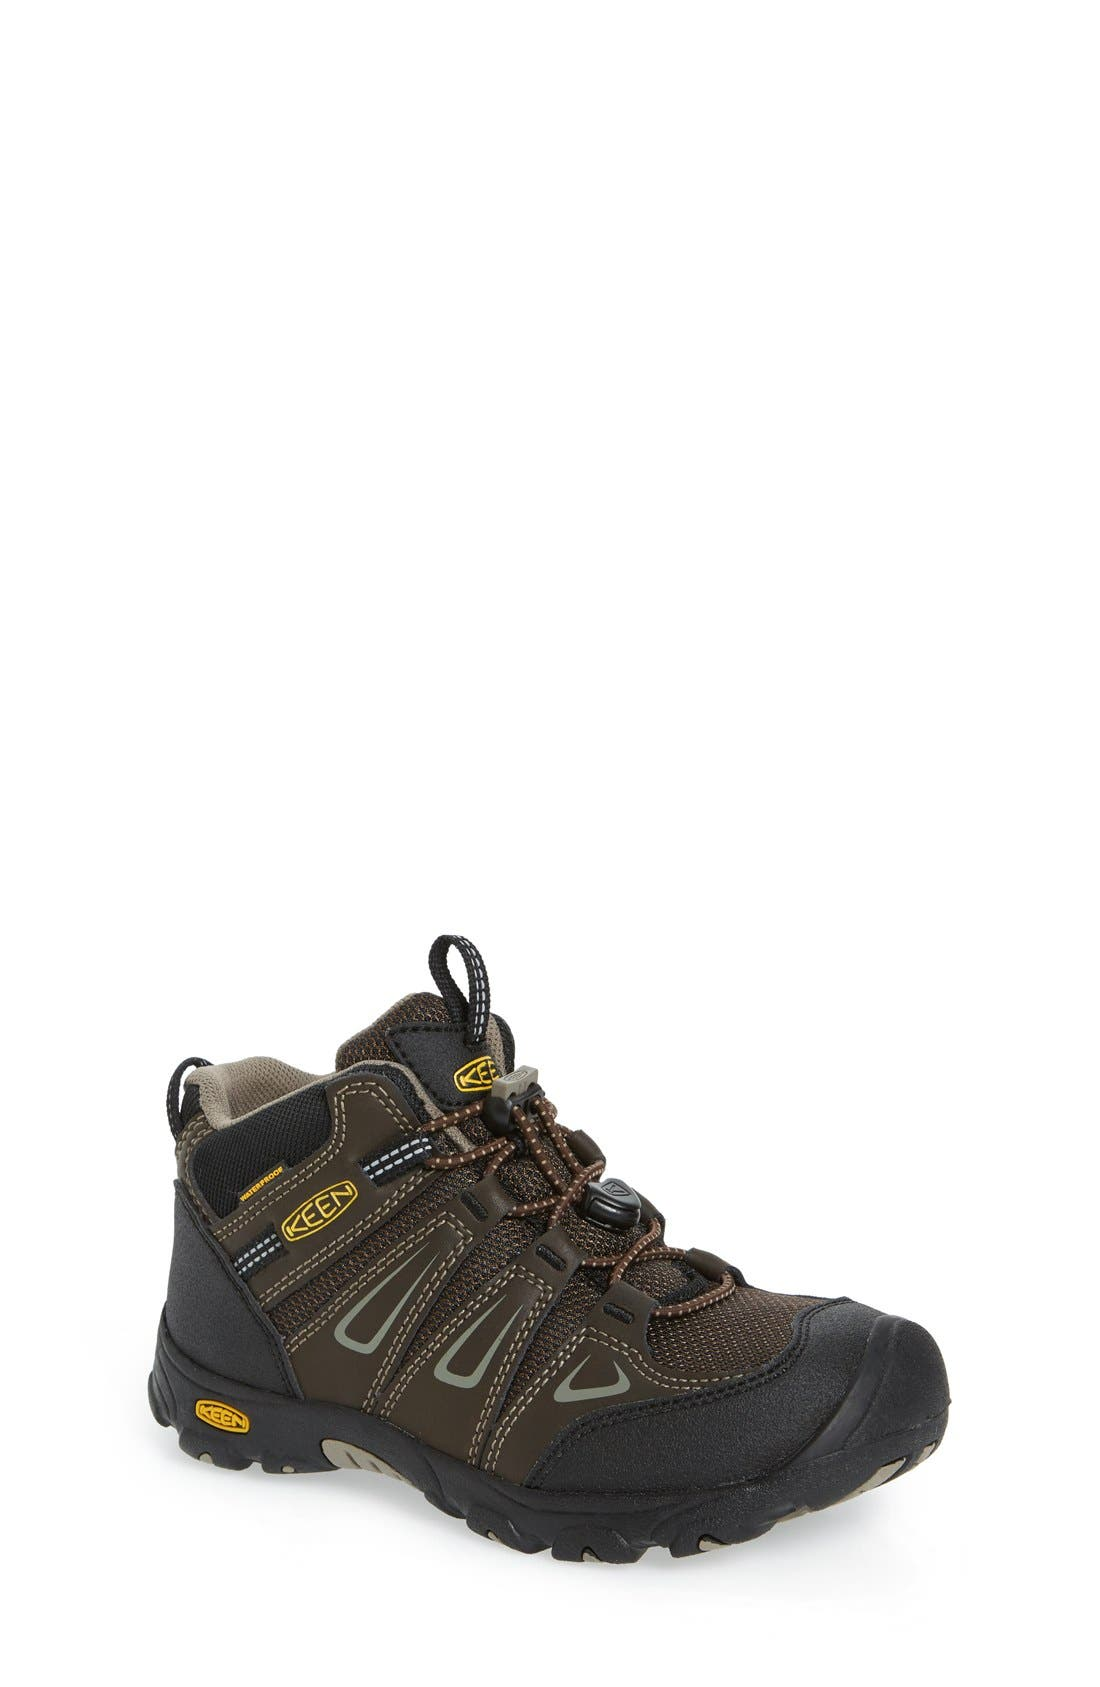 'Oakridge' Waterproof Hiking Boot,                             Main thumbnail 1, color,                             210